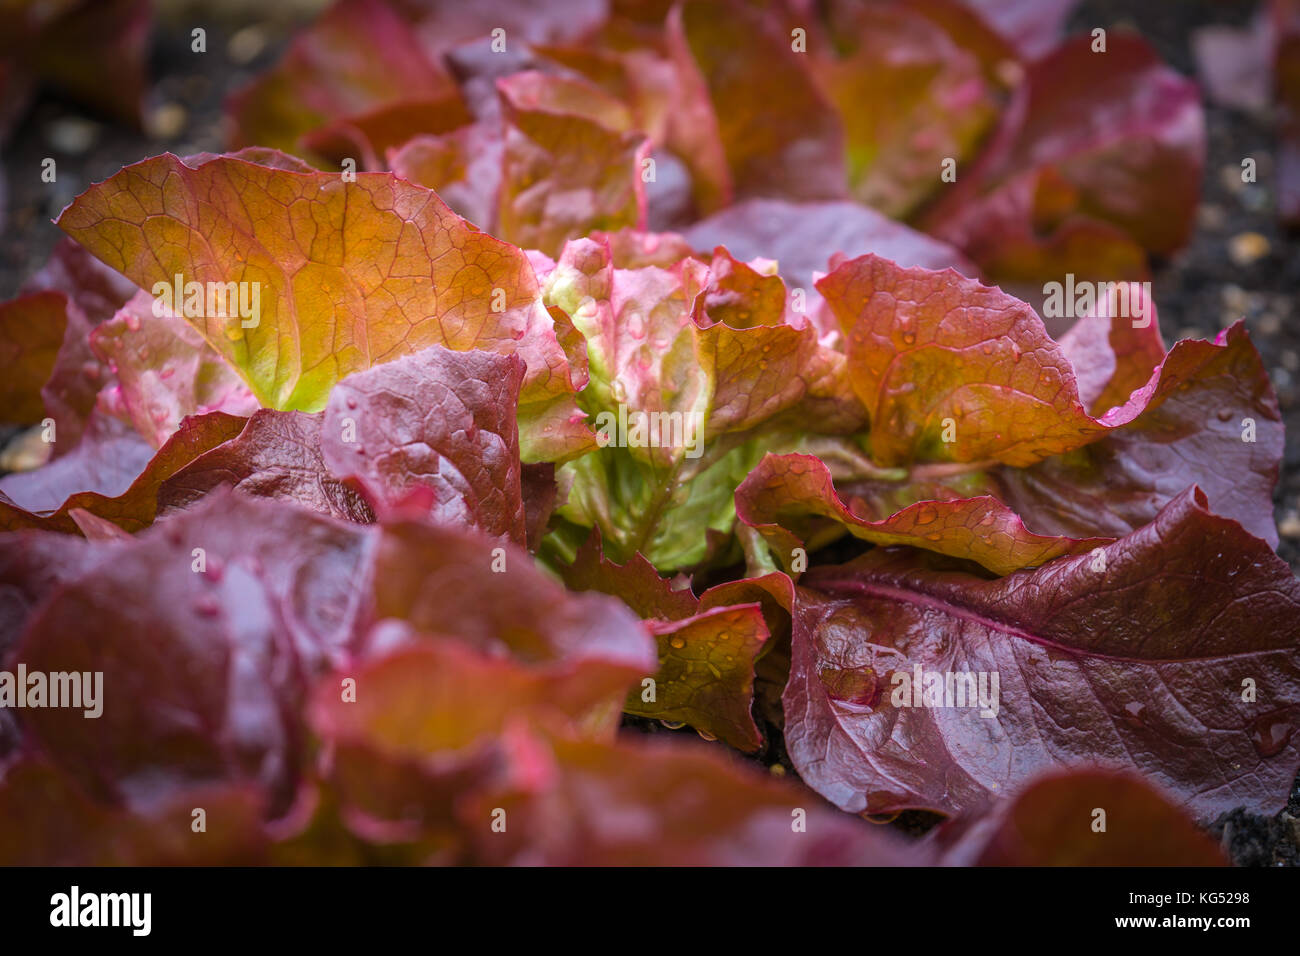 Red Leaf lettuces are a group of lettuce cultivars with red leaves. - Stock Image